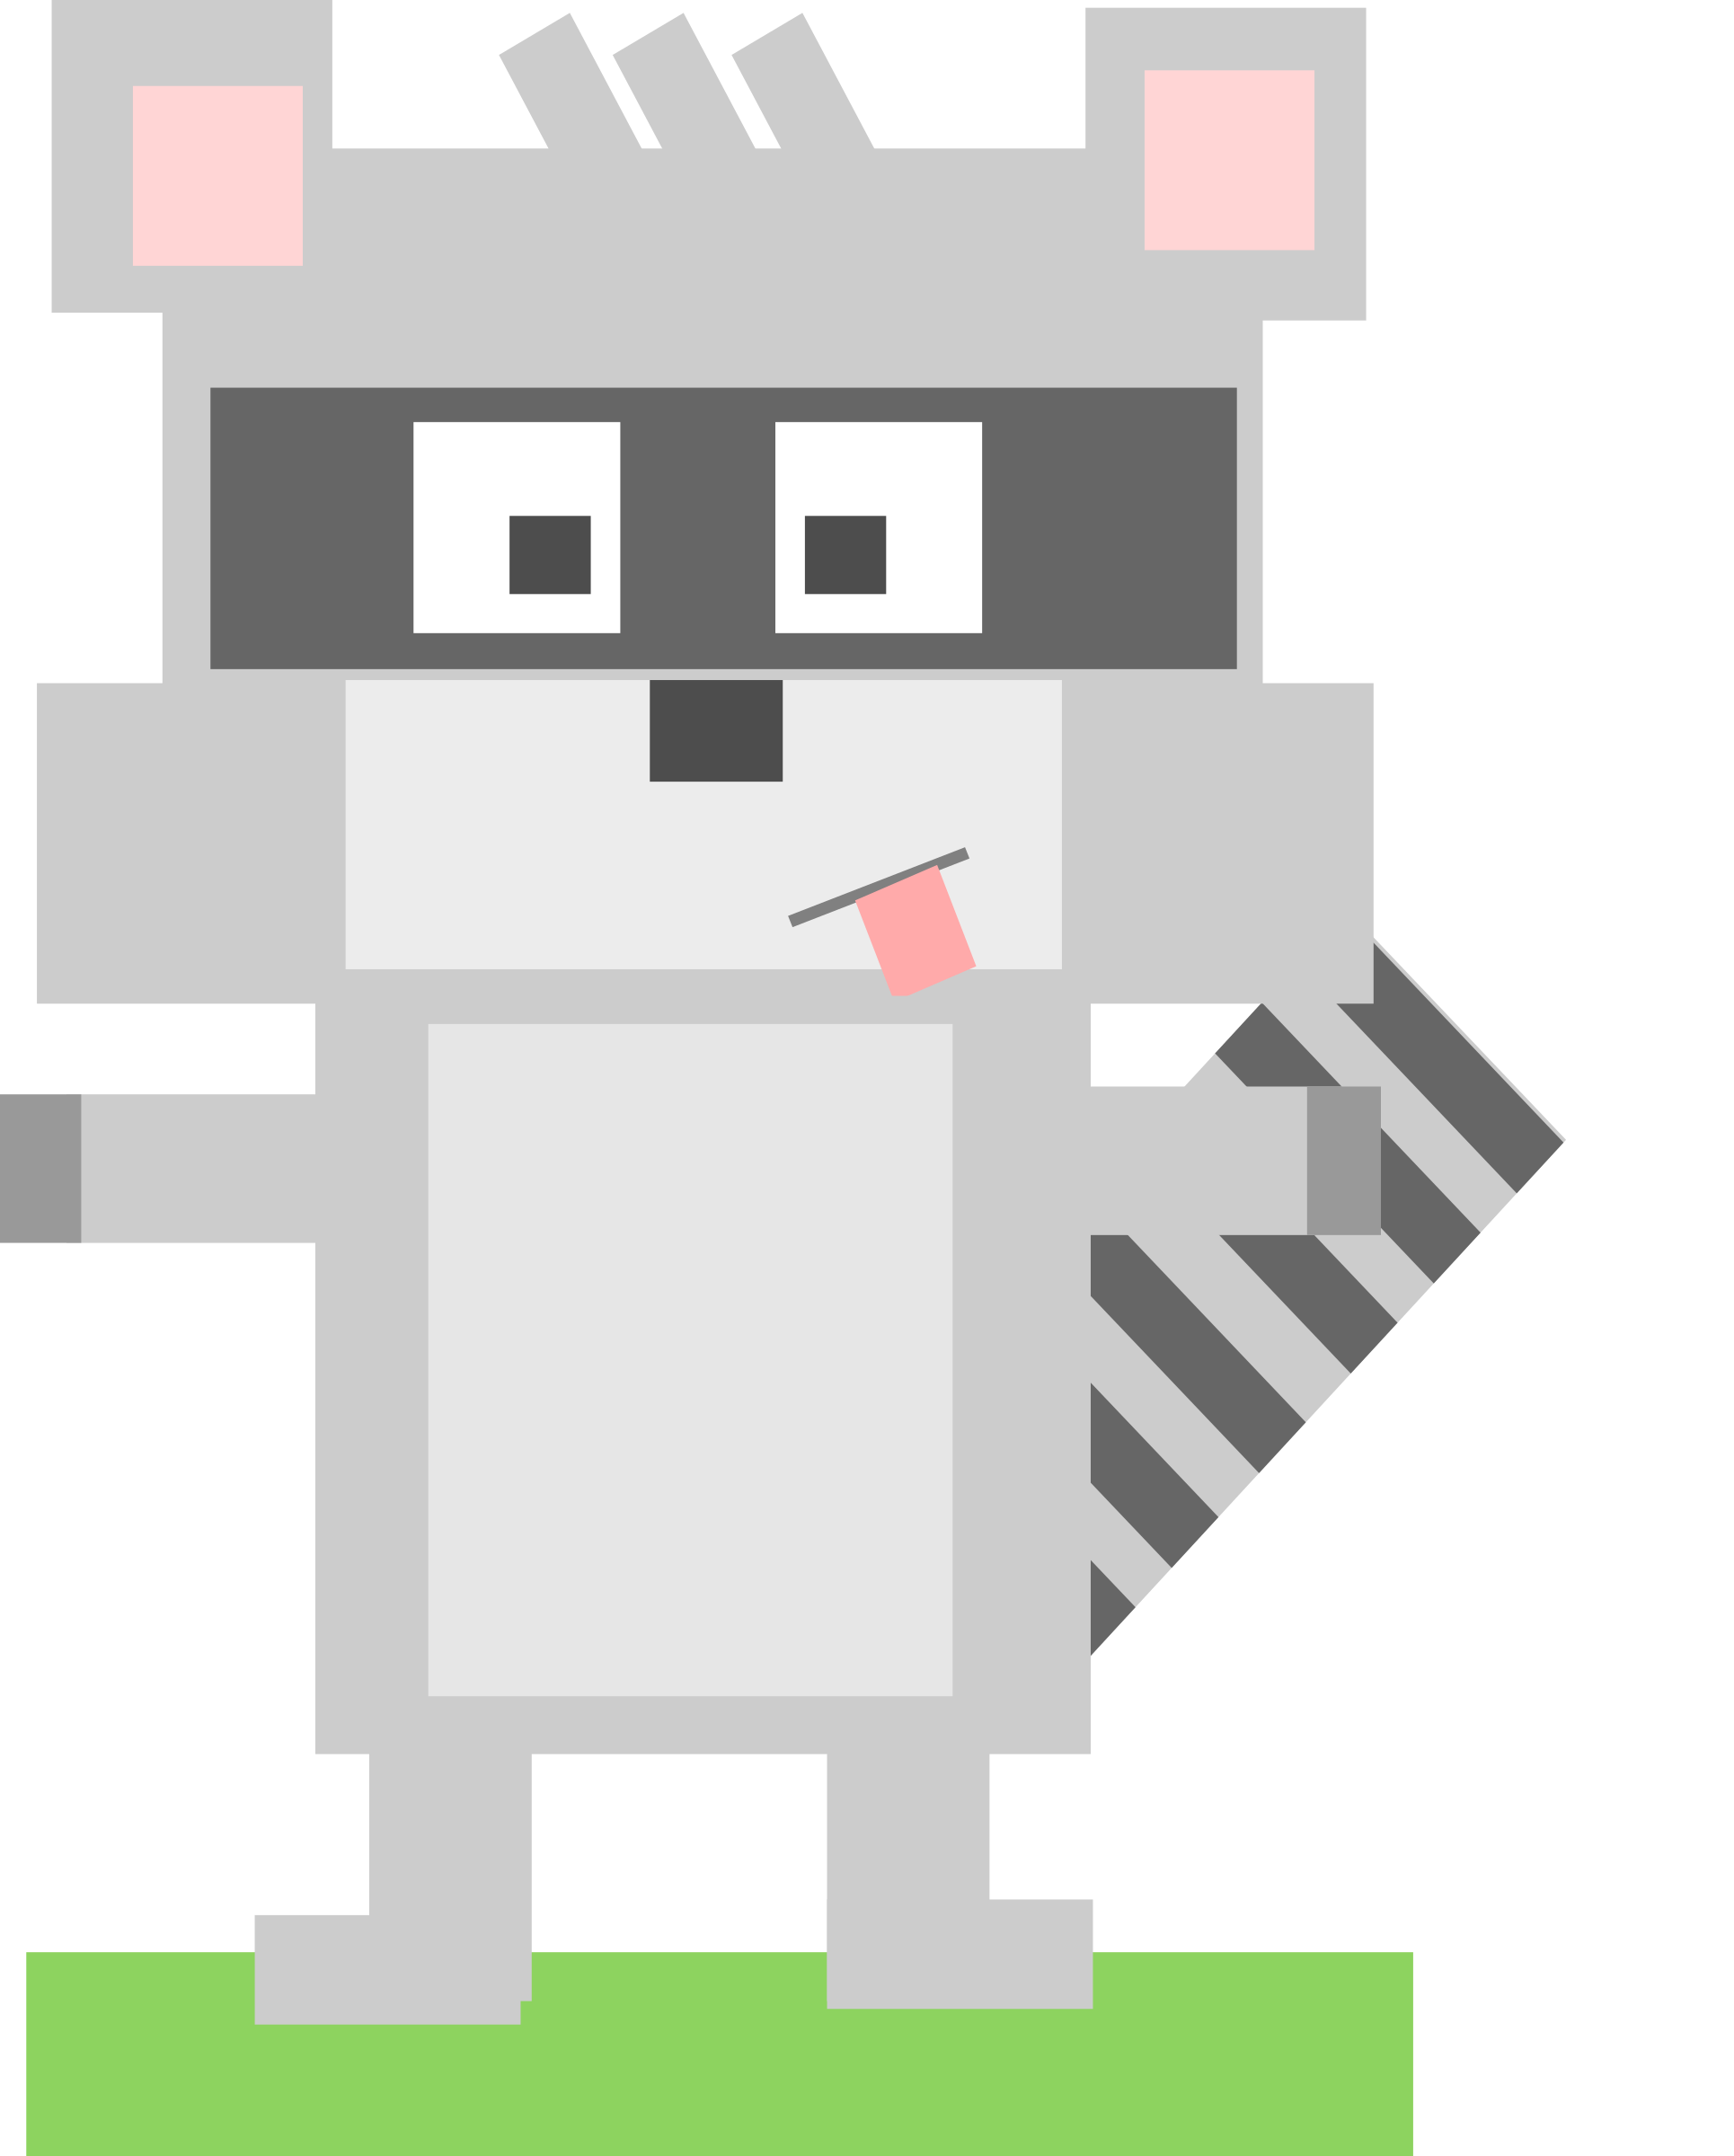 Square animal cartoon raccoon by Dog99x